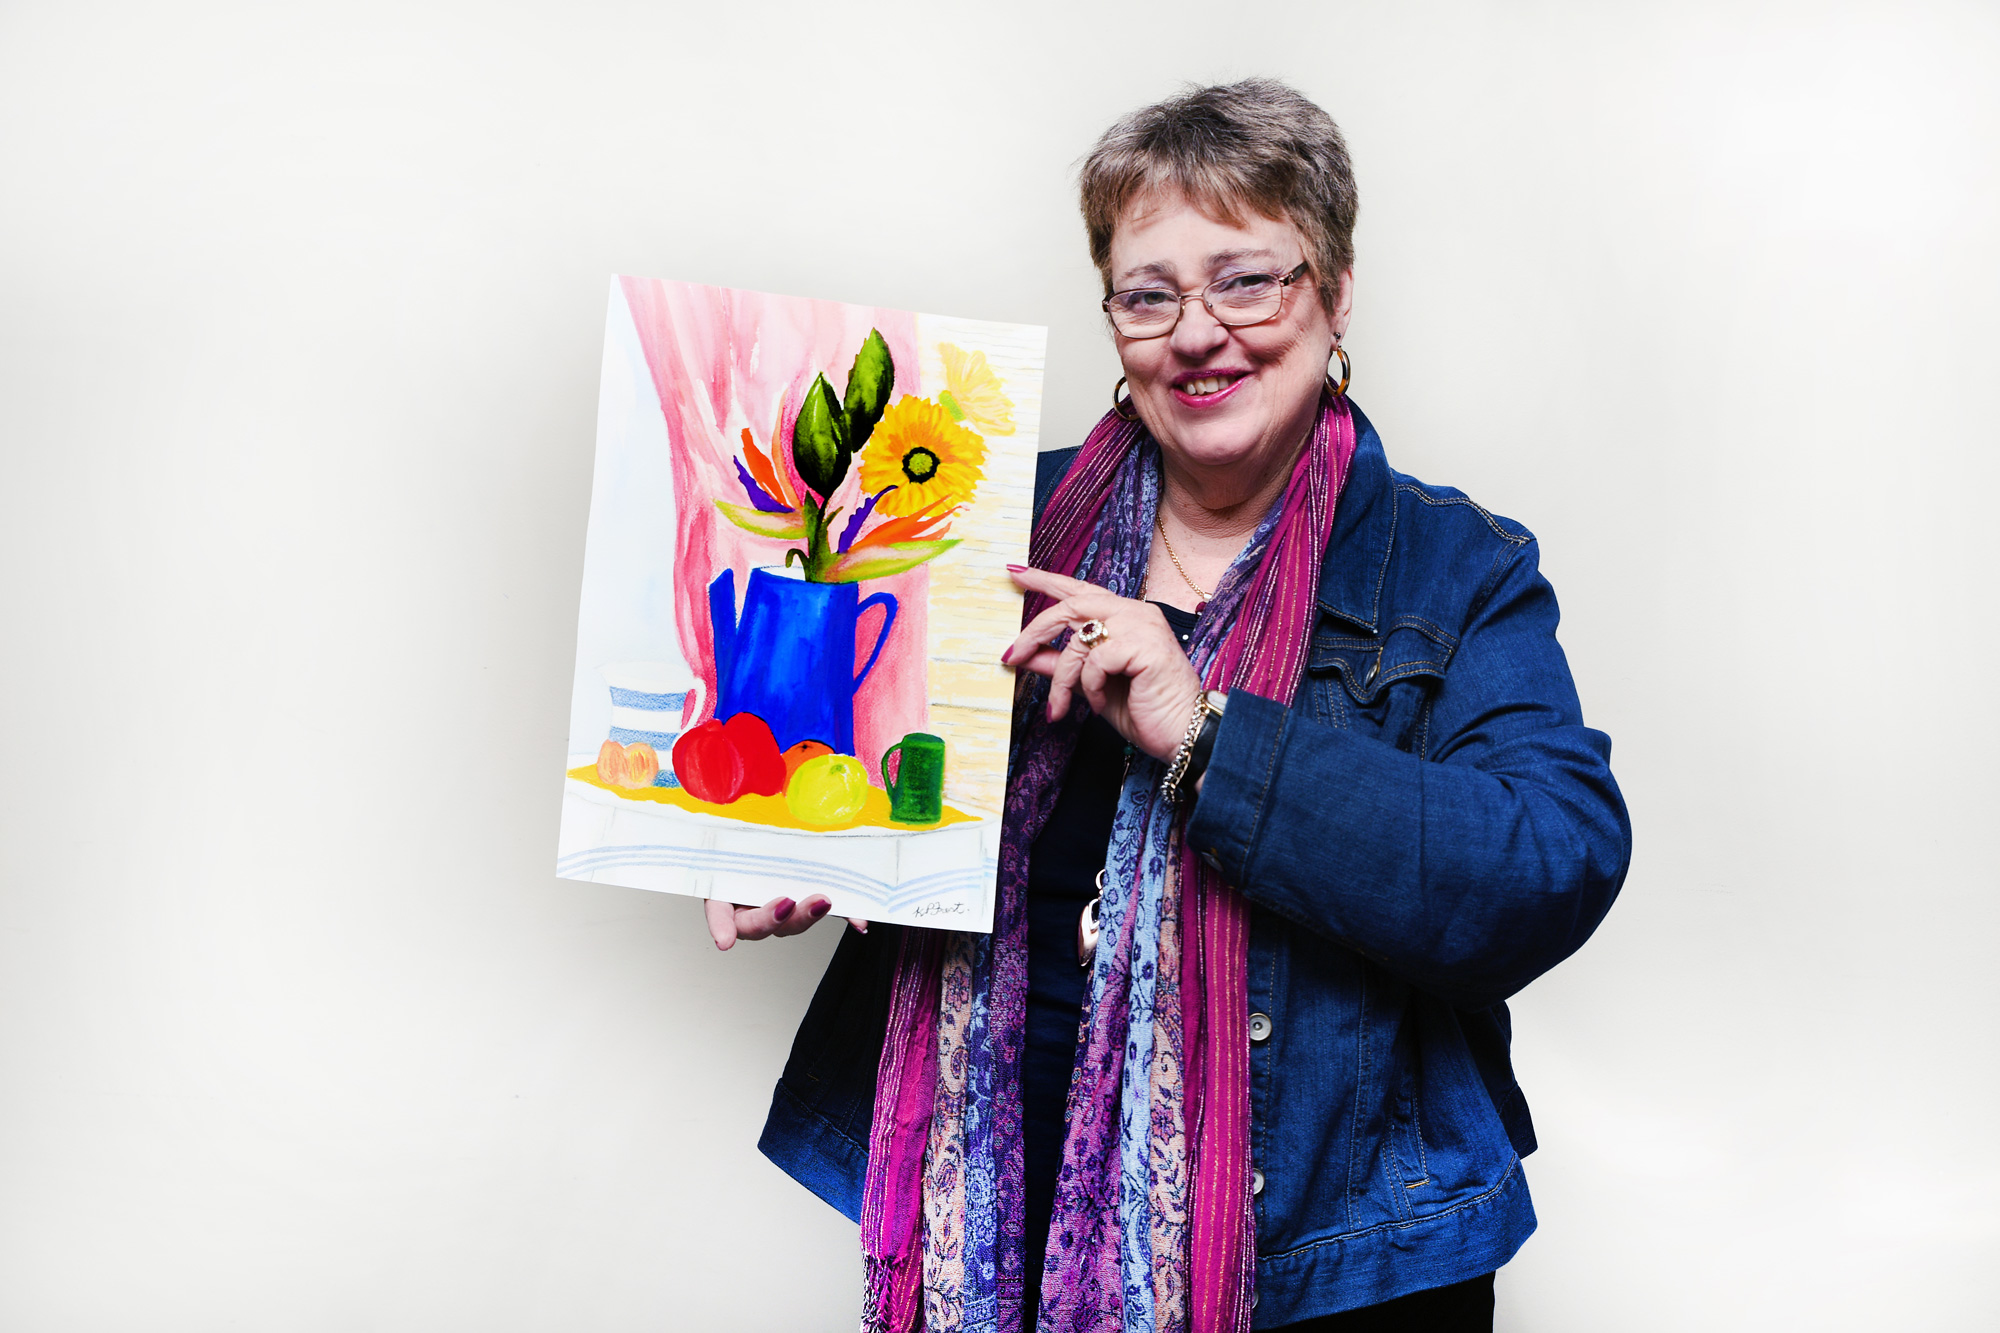 Meet Kerry Artist And Smart Recovery Peer Facilitator